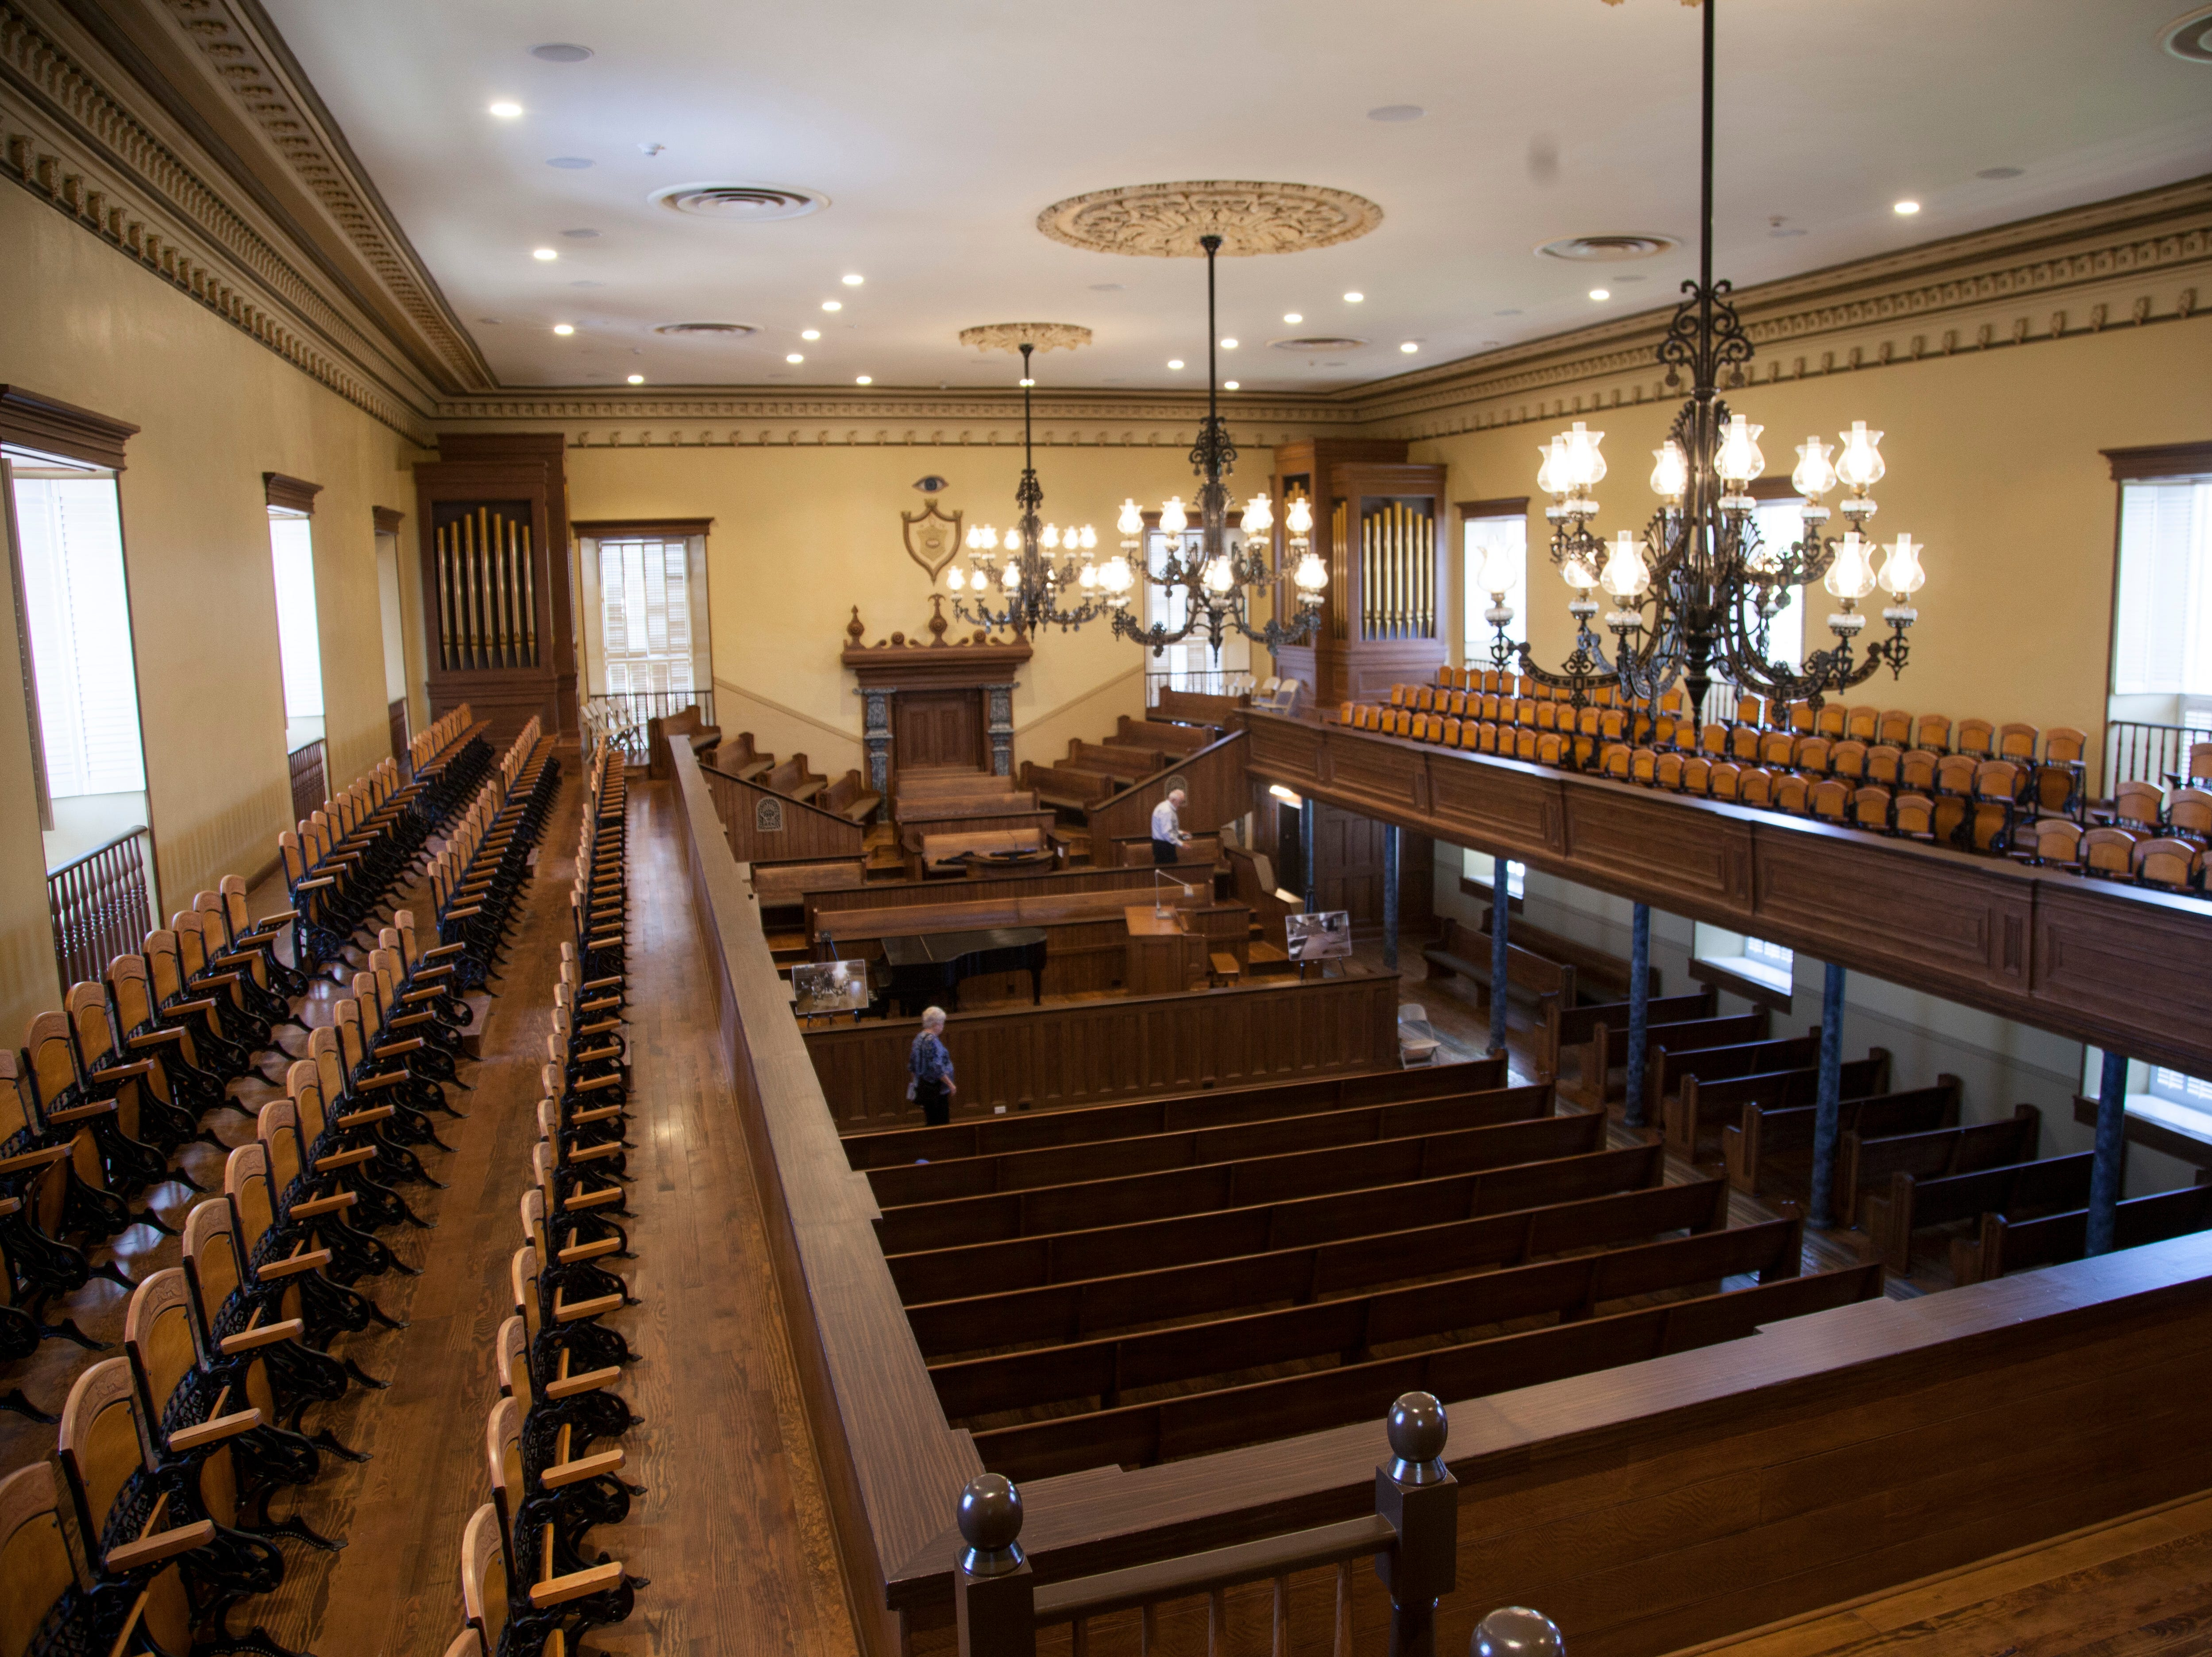 Community members tour the St. George Tabernacle after two years of renovations to preserve and secure the historic building Monday, July 23, 2018.